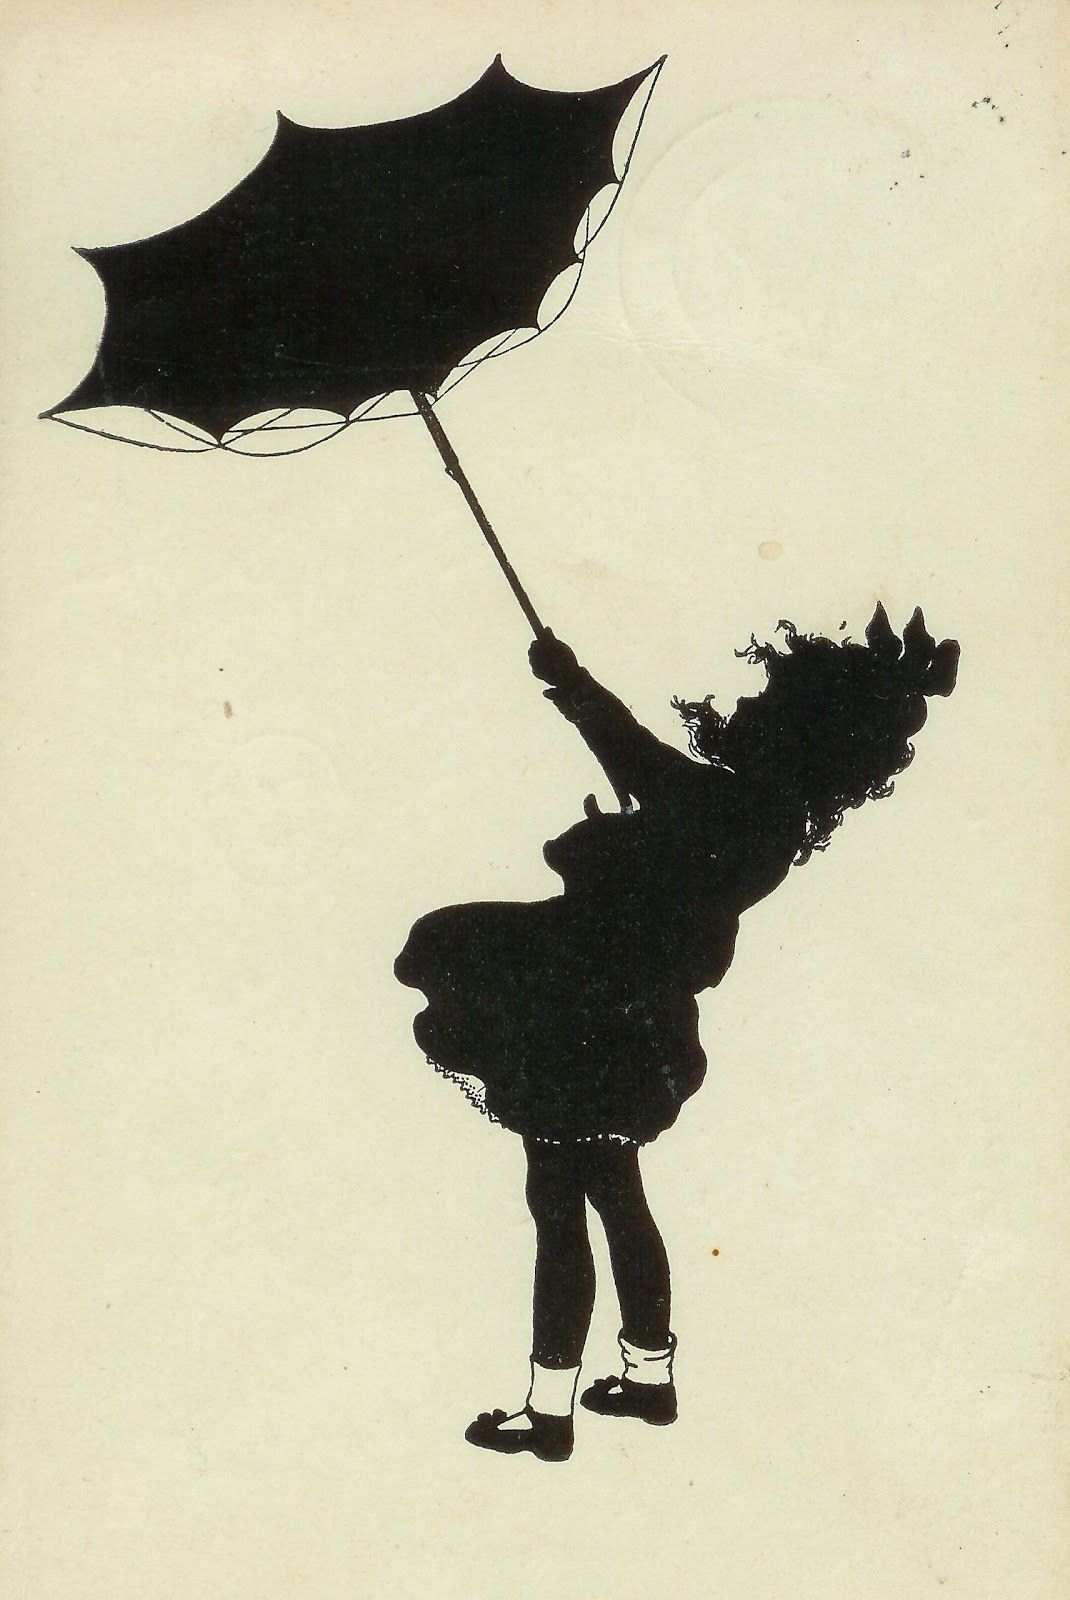 images of silhouettes of children in rain | Old Postcard Wednesday ...